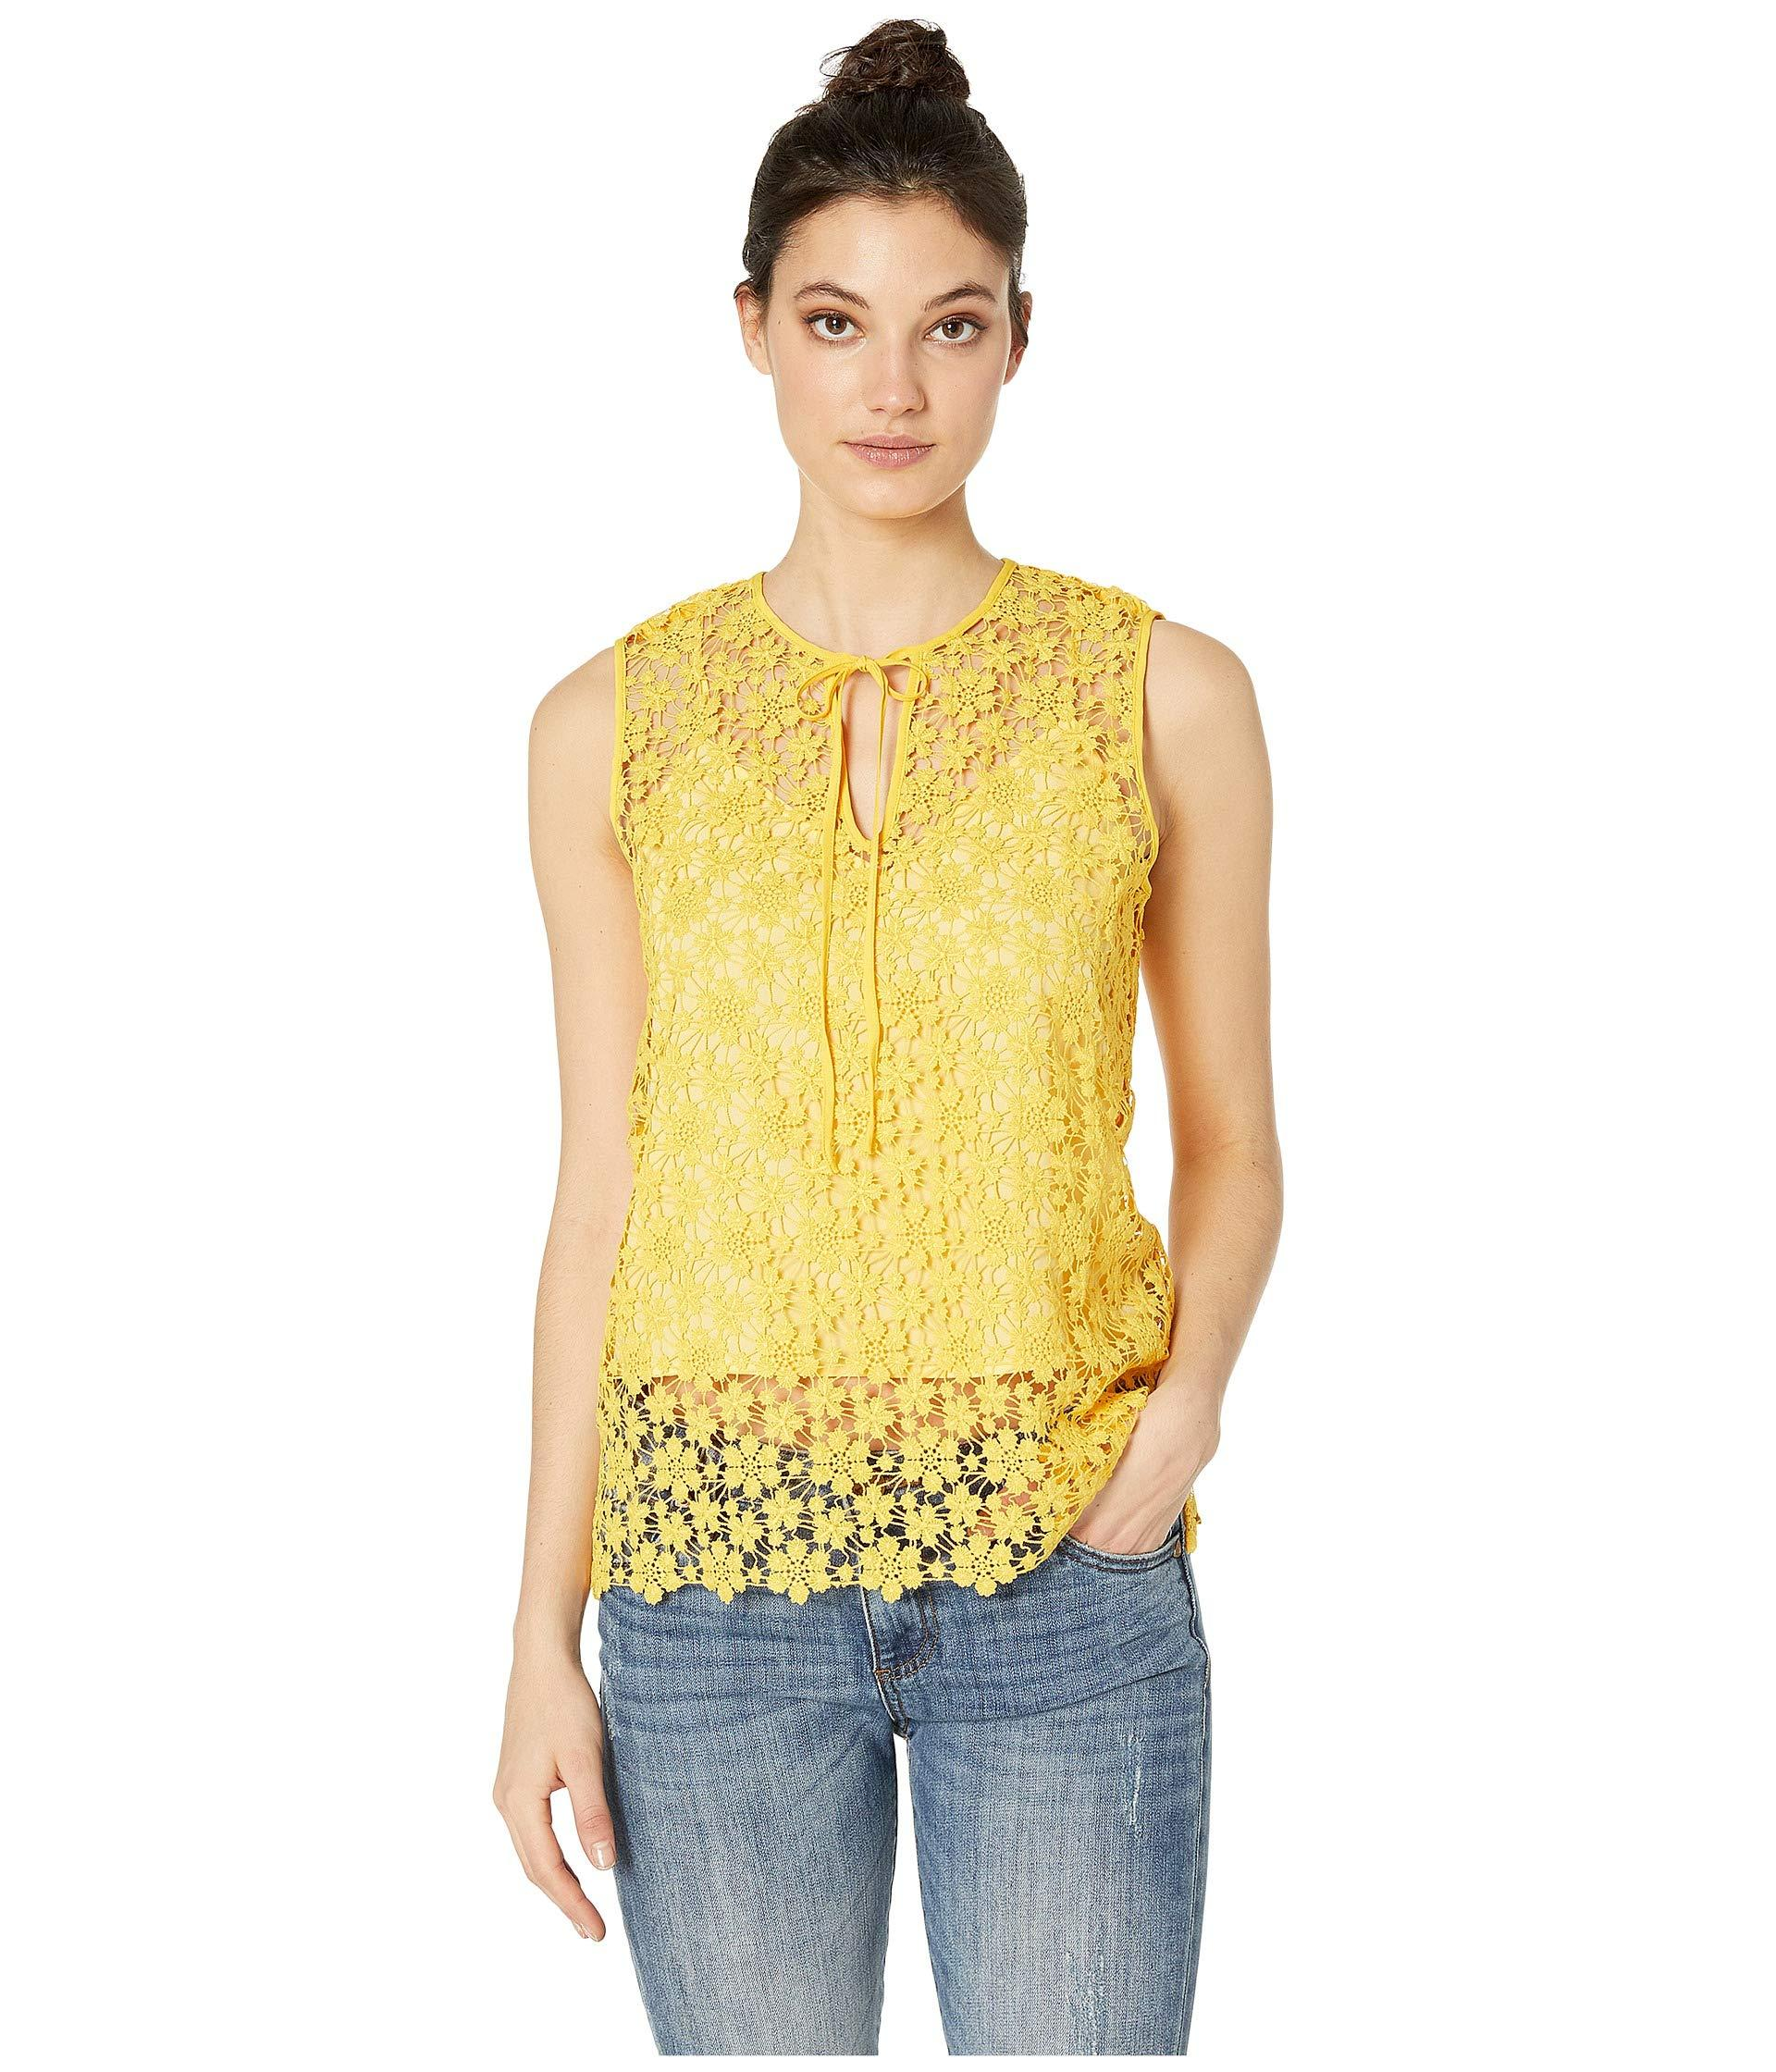 b5f6dcb26460f Lyst - Juicy Couture Lydia Guipure Lace Sleeveless Top in Yellow